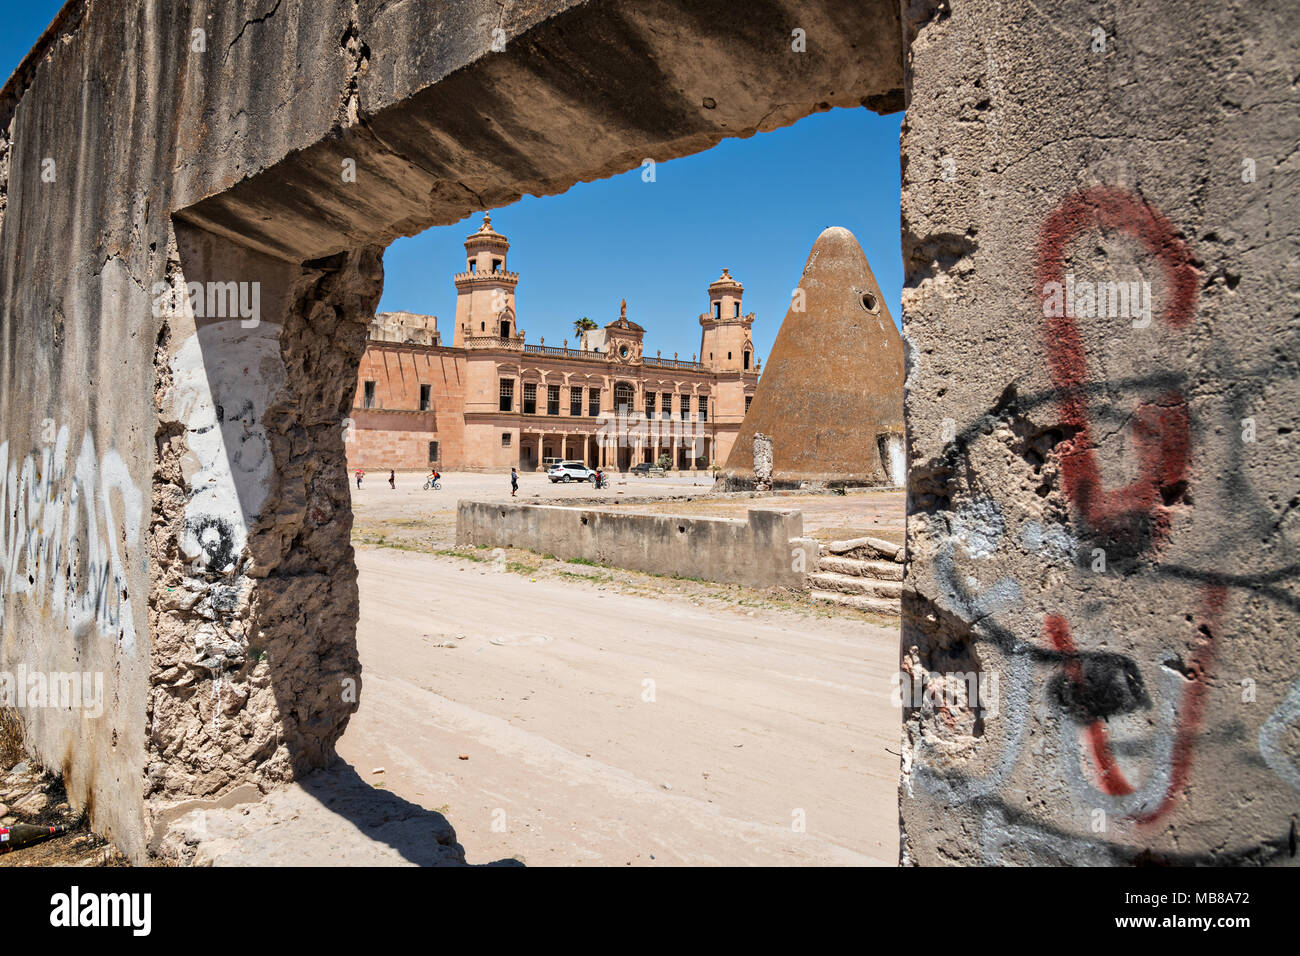 The pyramid shaped granaries and the front towers of the Hacienda de Jaral de Berrio in Jaral de Berrios, Guanajuato, Mexico. The abandoned Jaral de Berrio hacienda was once the largest in Mexico and housed over 6,000 people on the property and is credited with creating Mescal. - Stock Image